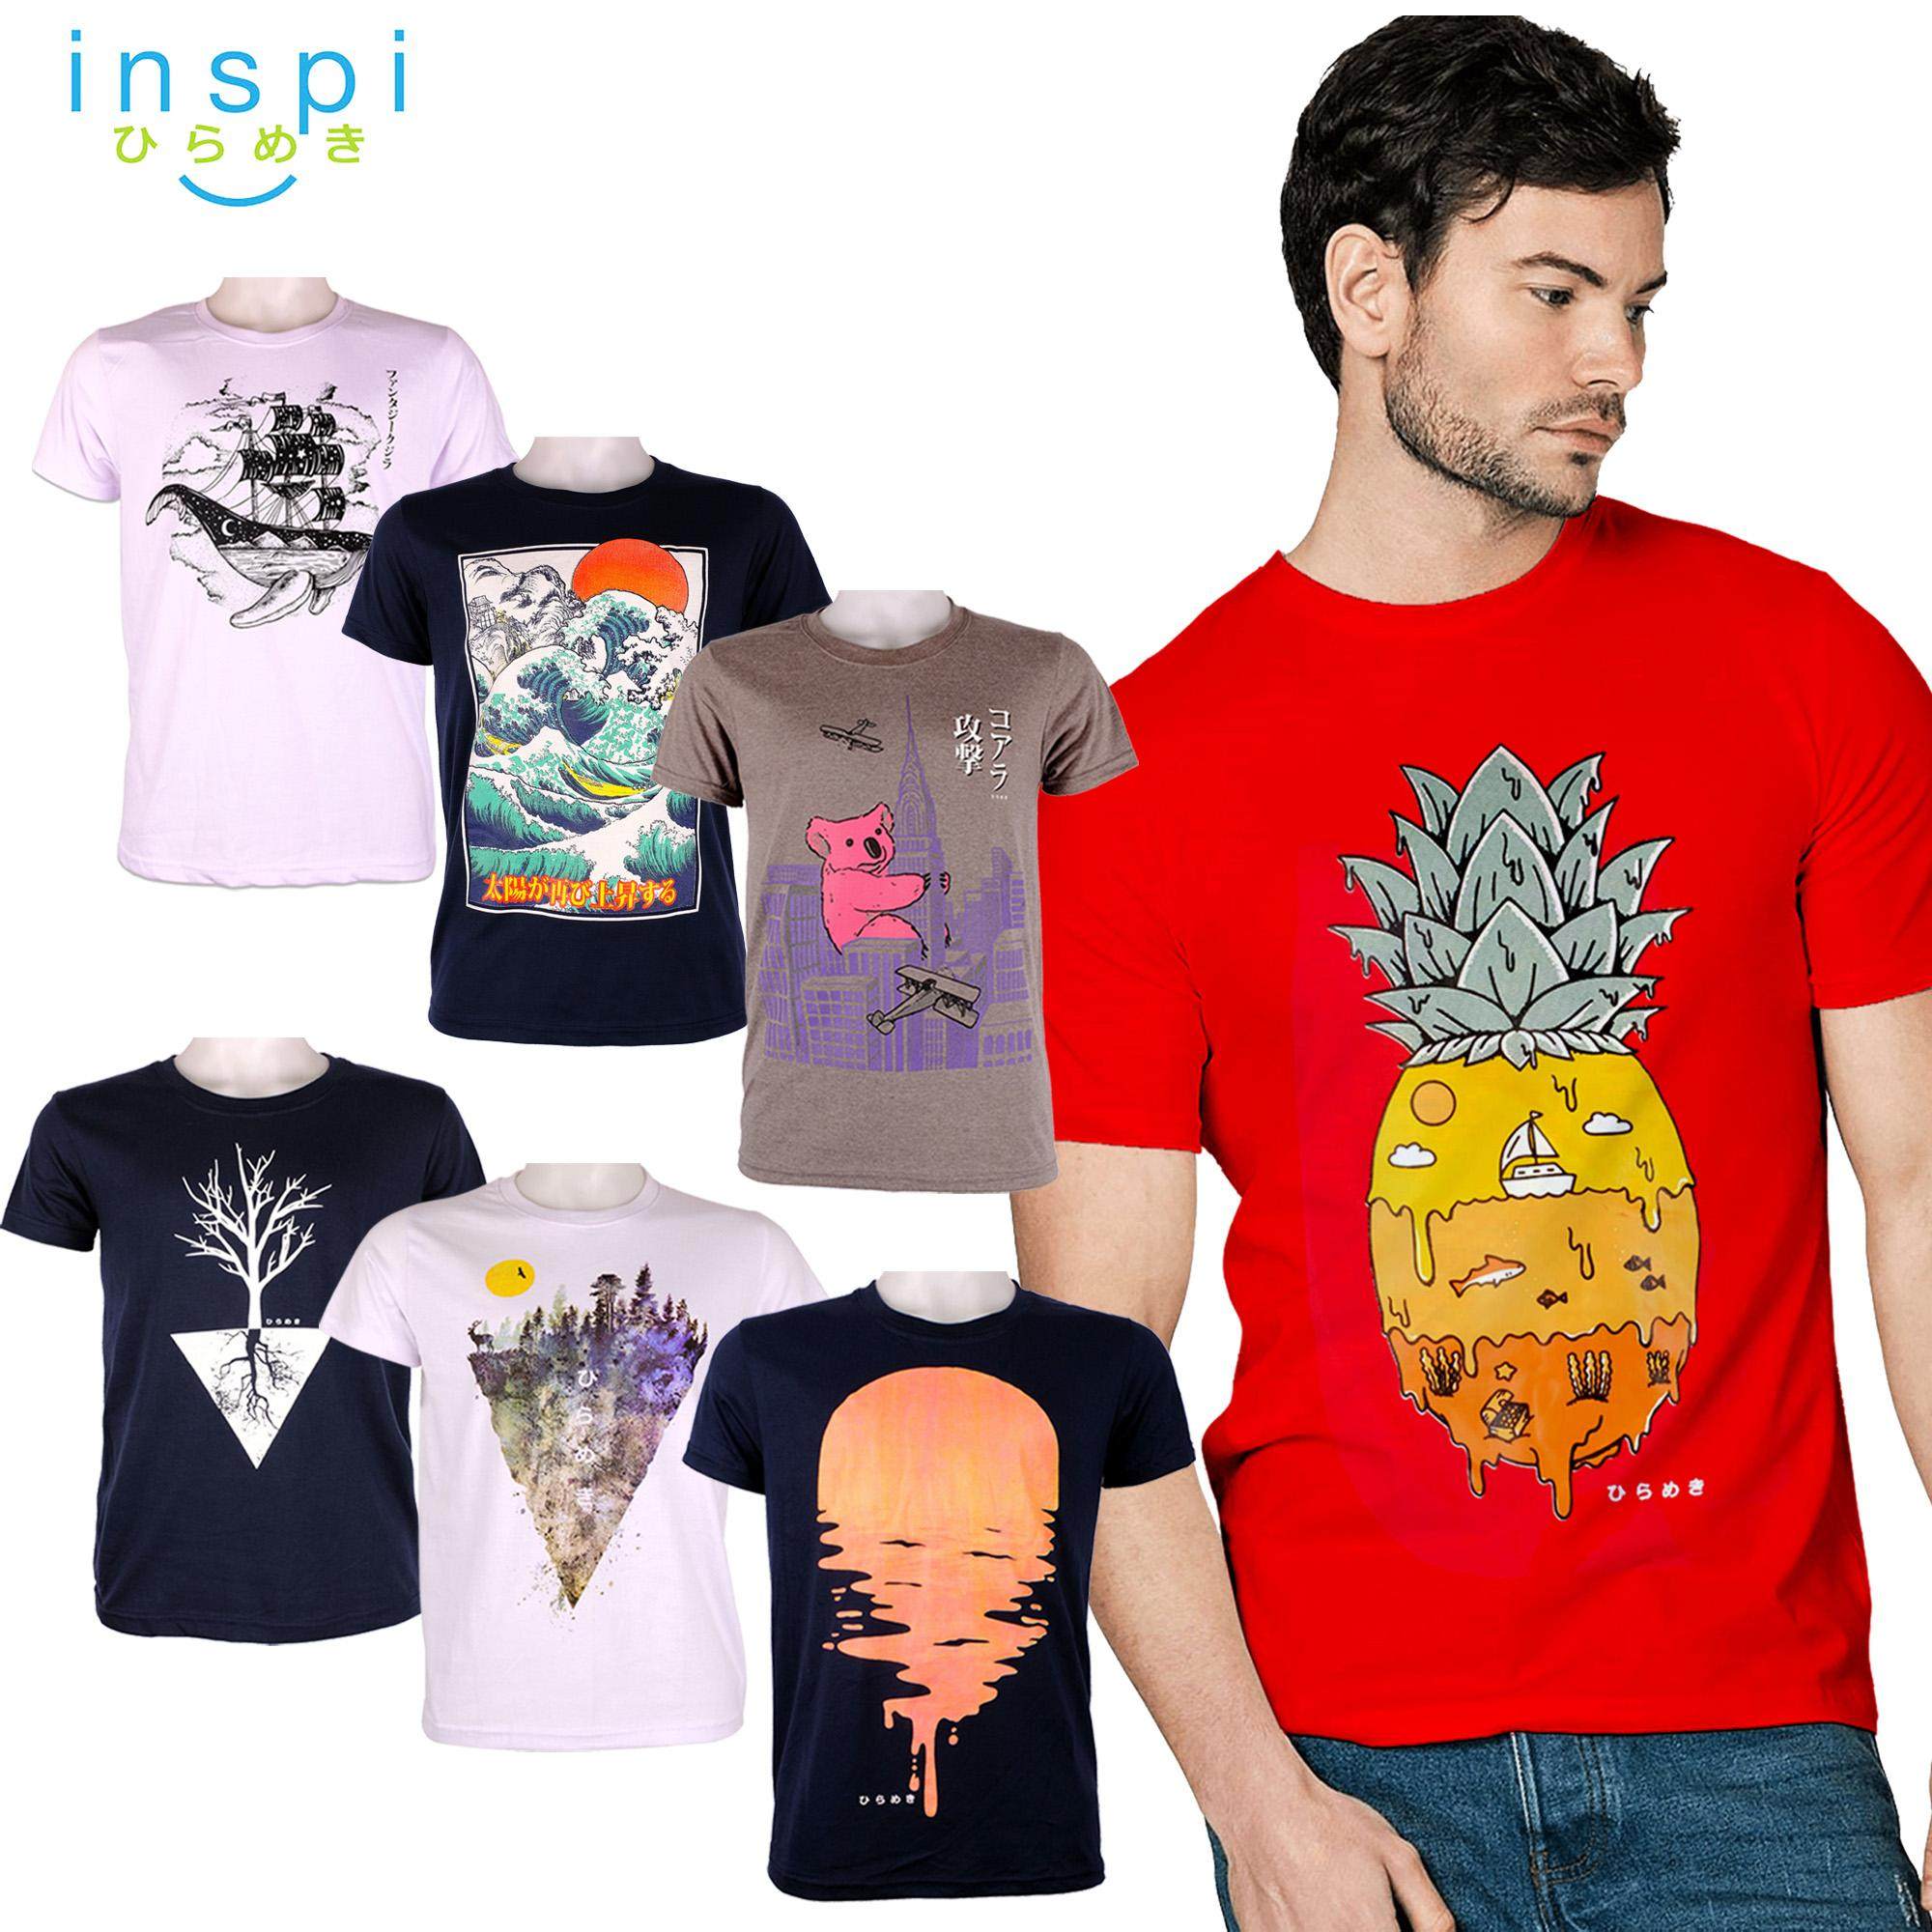 9066ae96f11 INSPI Tees Nature Collection tshirt printed graphic tee Mens t shirt shirts  for men tshirts sale